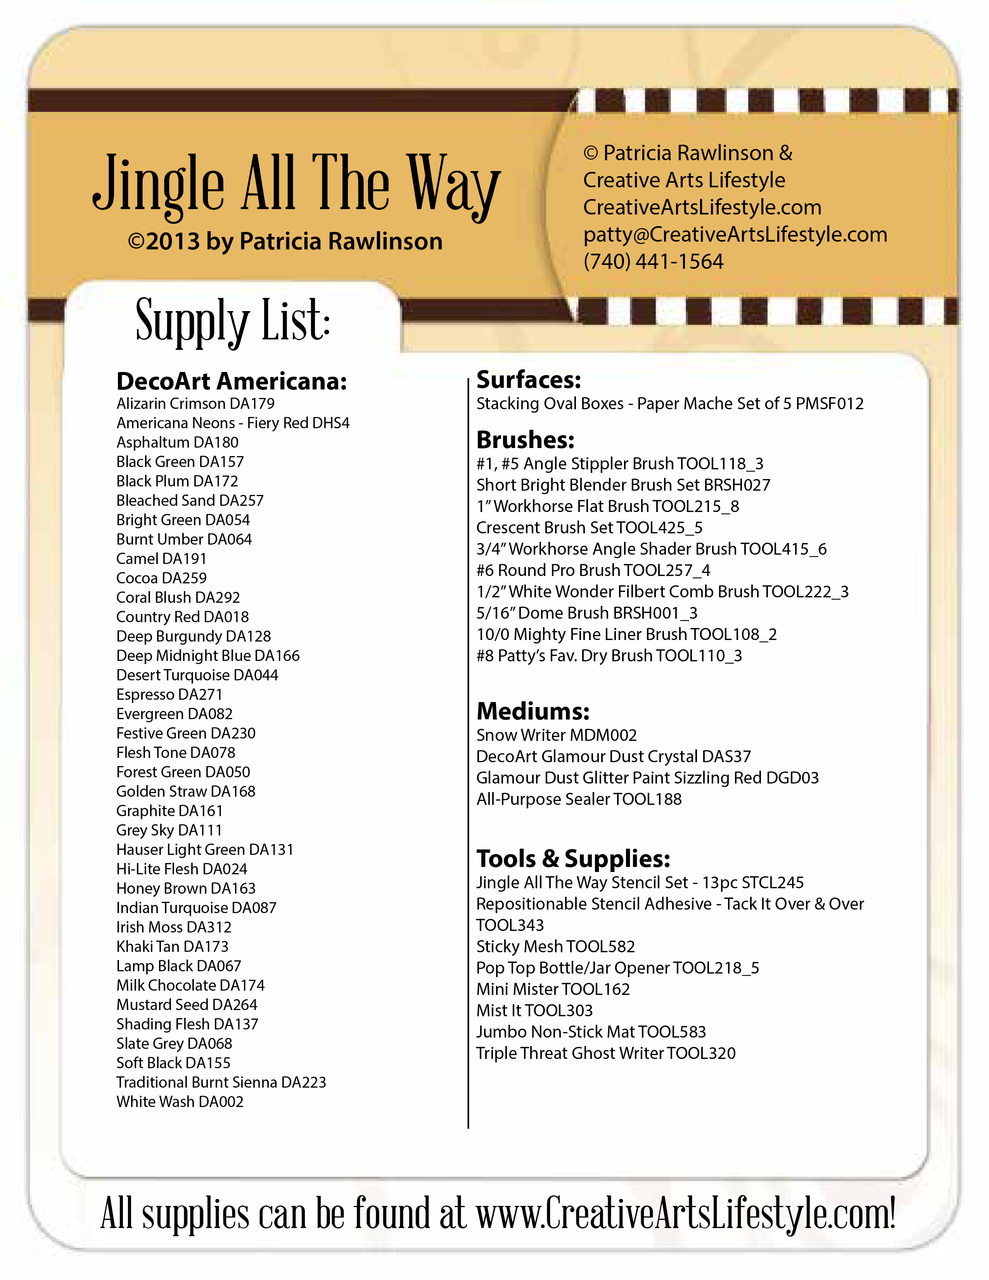 Jingle All the Way E-Packet - Patricia Rawlinson